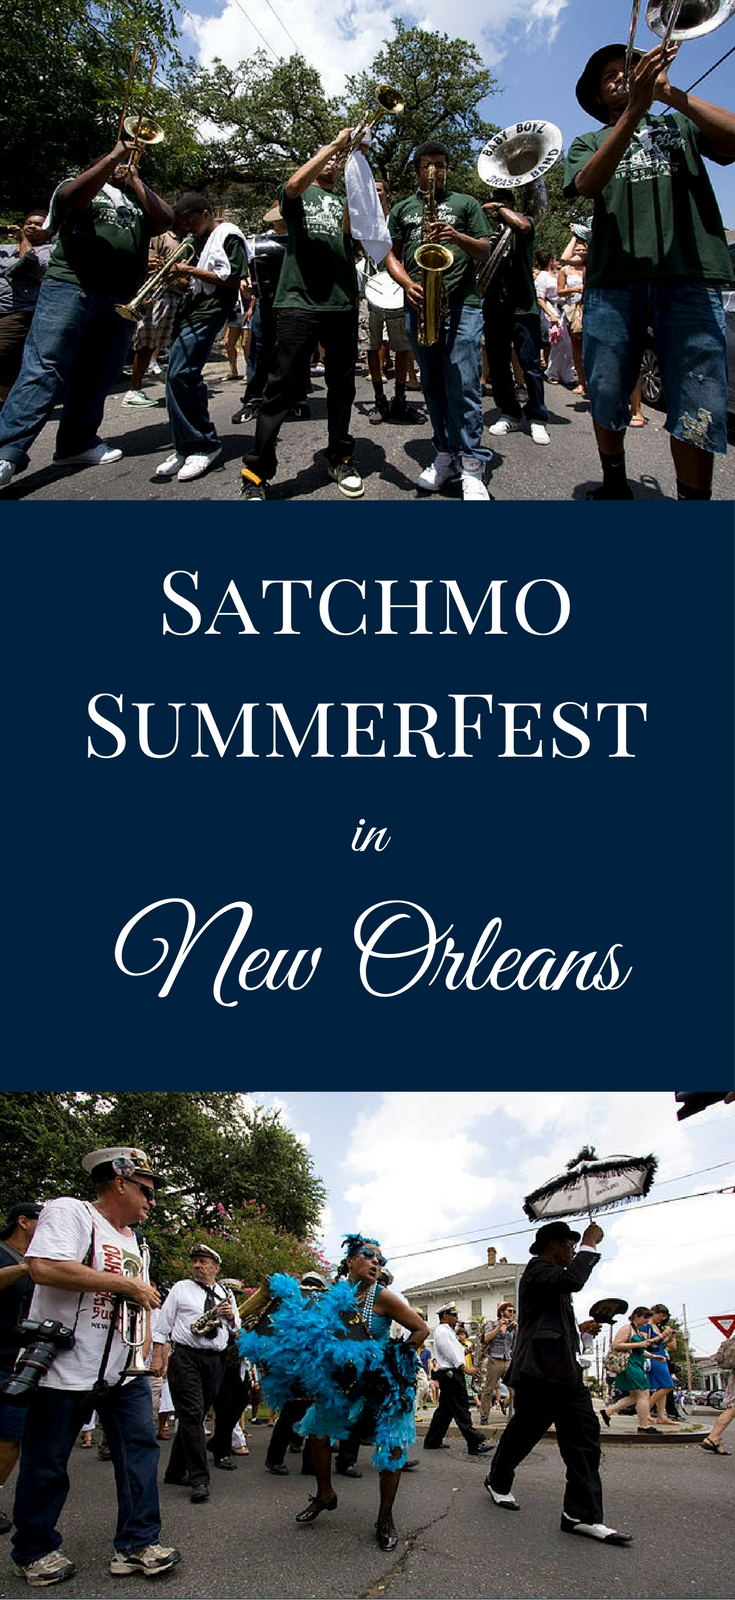 Satchmo SummerFest honors New Orleans' most famous son, Louis Armstrong, with 3 days of music, food, and fun, each August in the French Quarter.